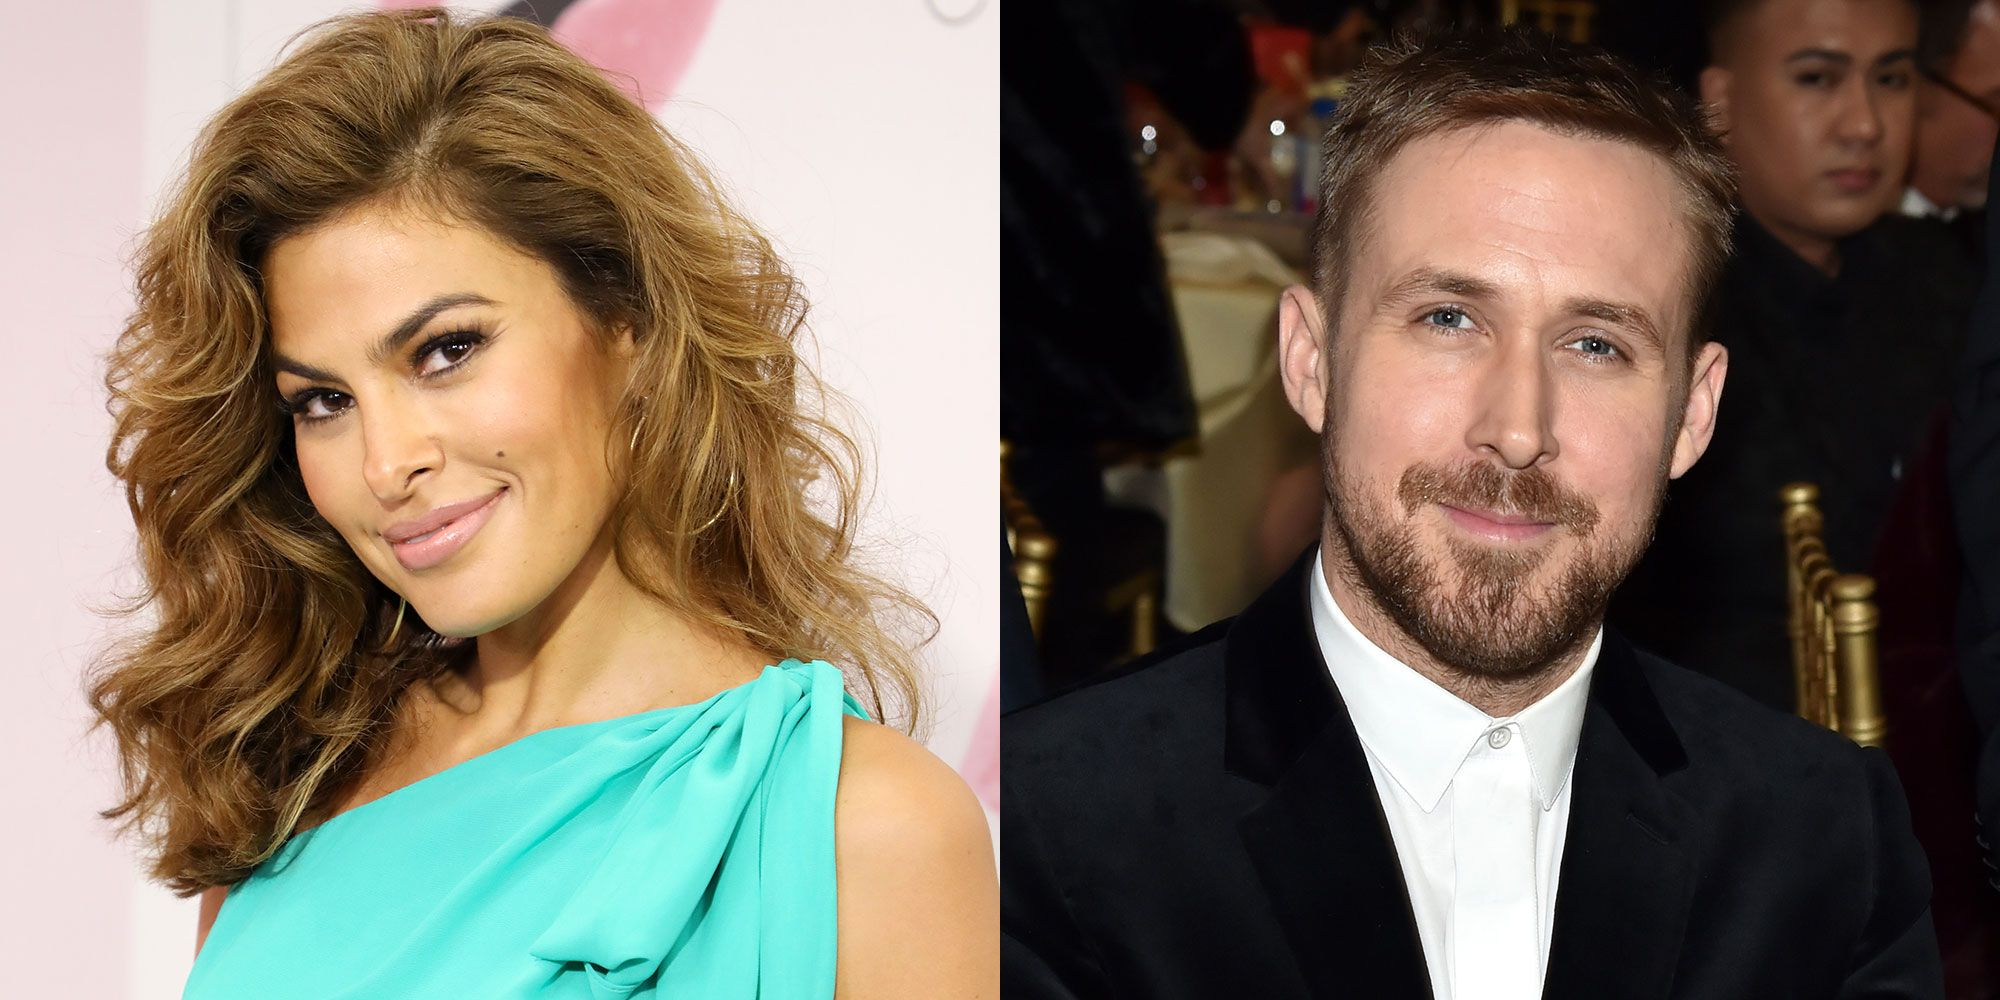 Eva Mendes Opened Up About Her Private Life With Ryan Gosling and Their Daughters